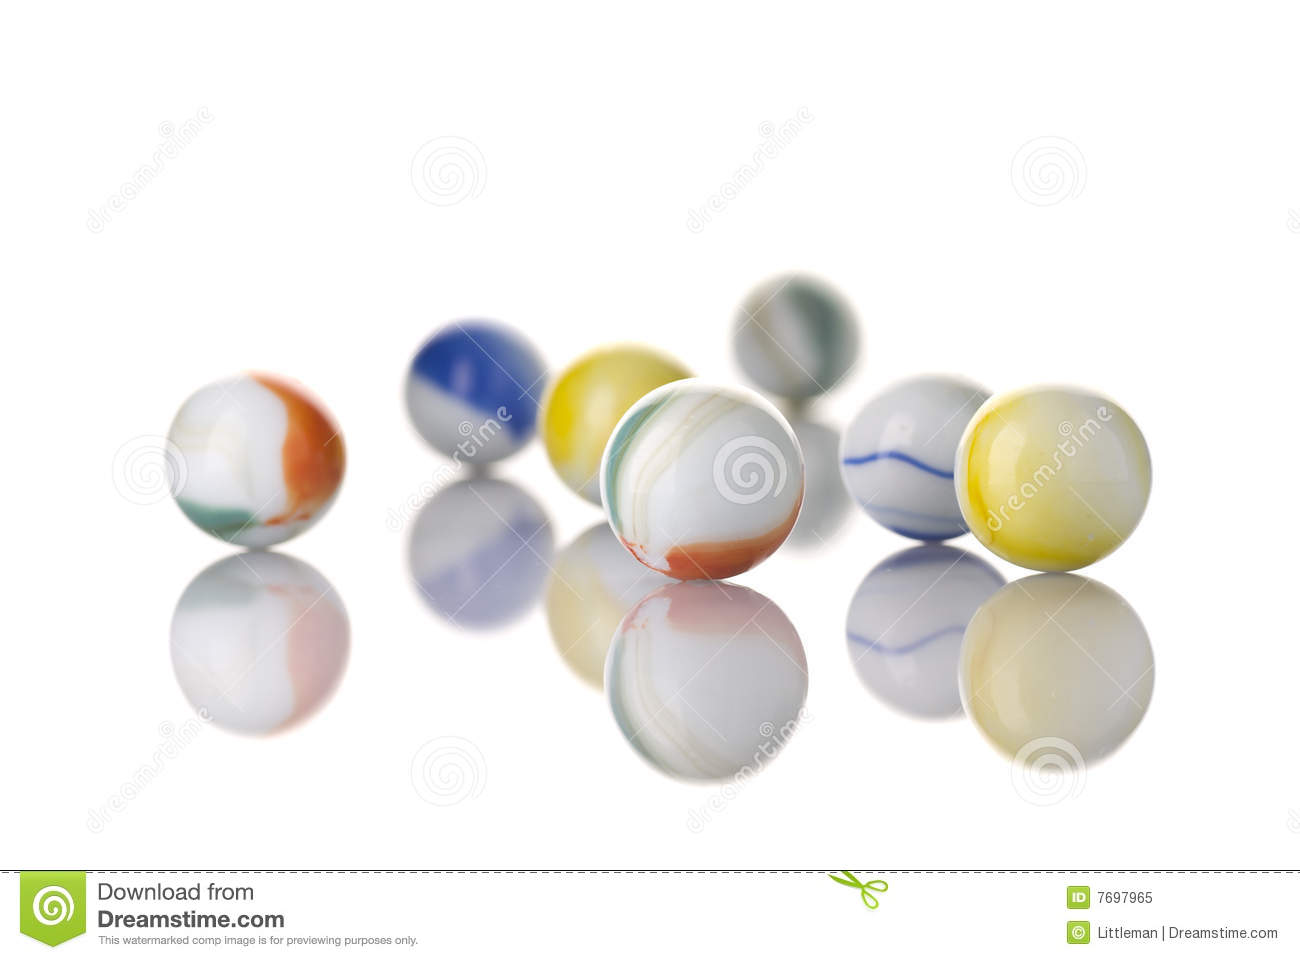 Solid White Toy Marbles : White toy marbles royalty free stock photo image